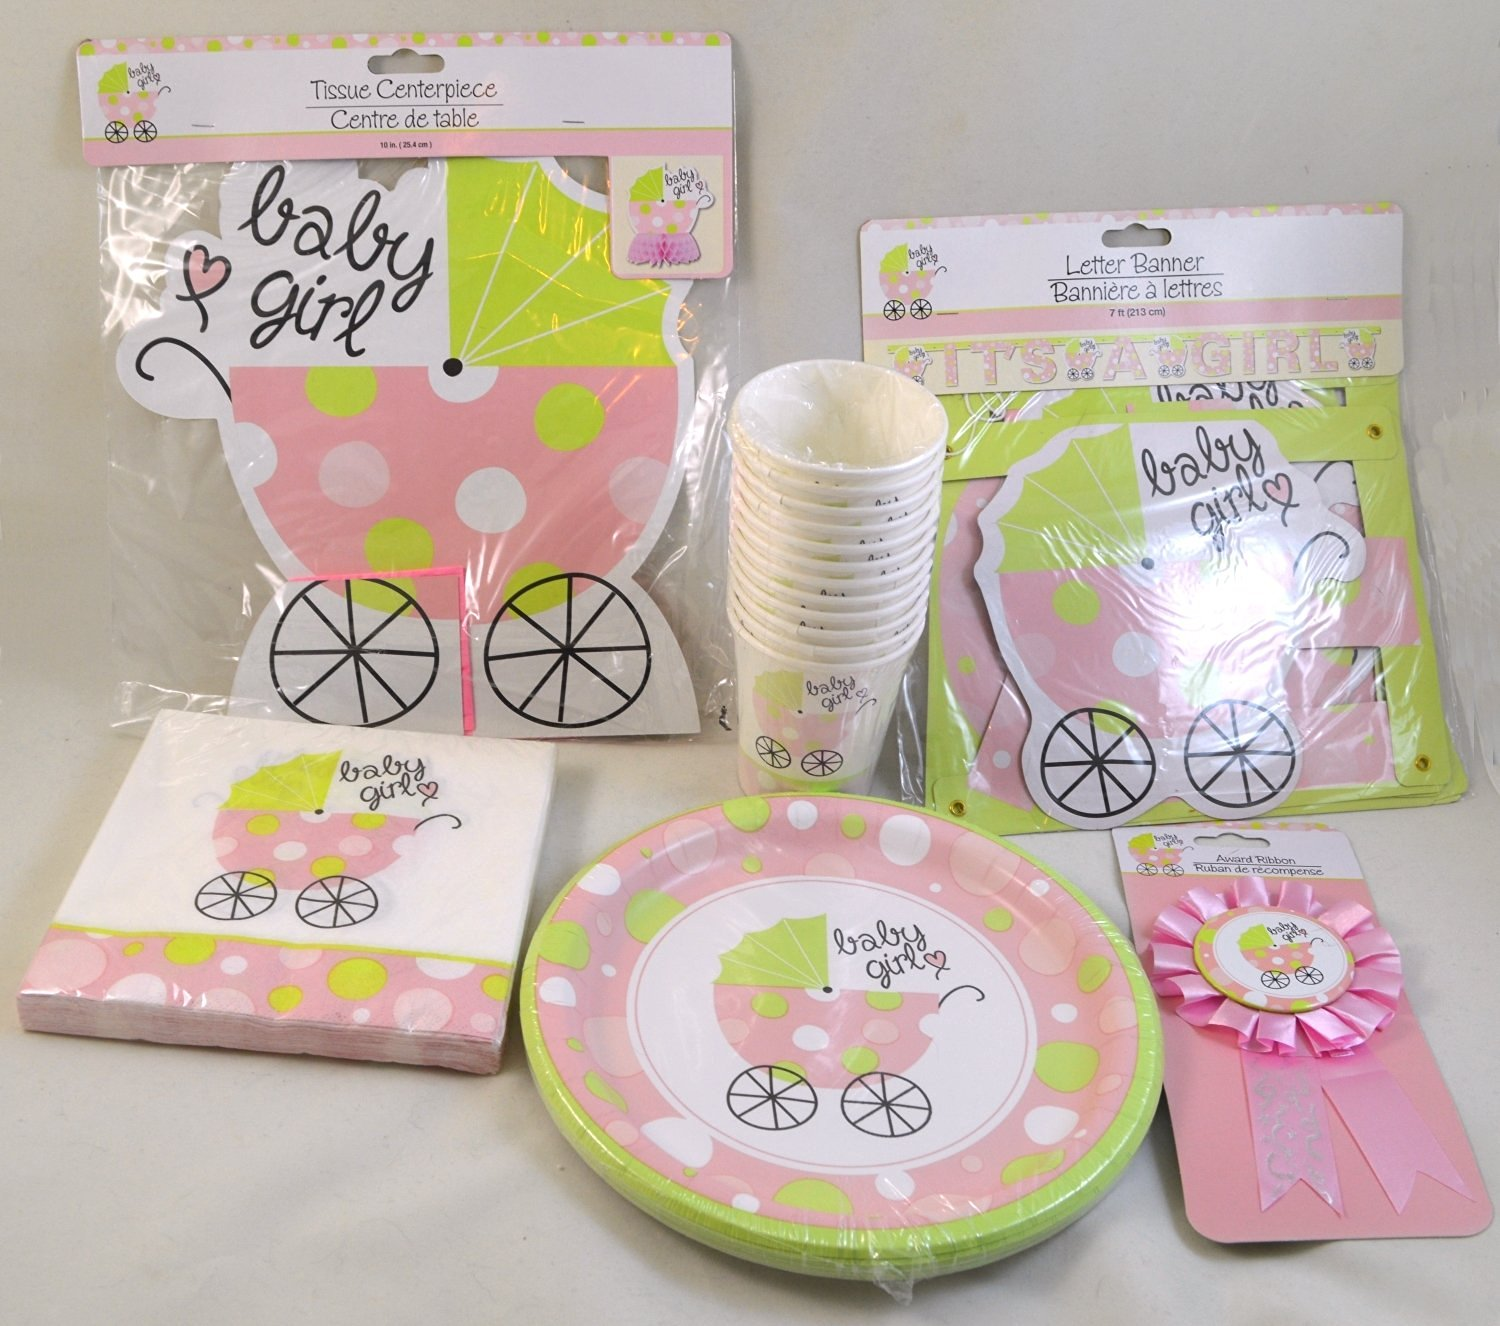 Baby Girl Baby Shower 6-Piece Party Pack with Place Setting for 12 Guests